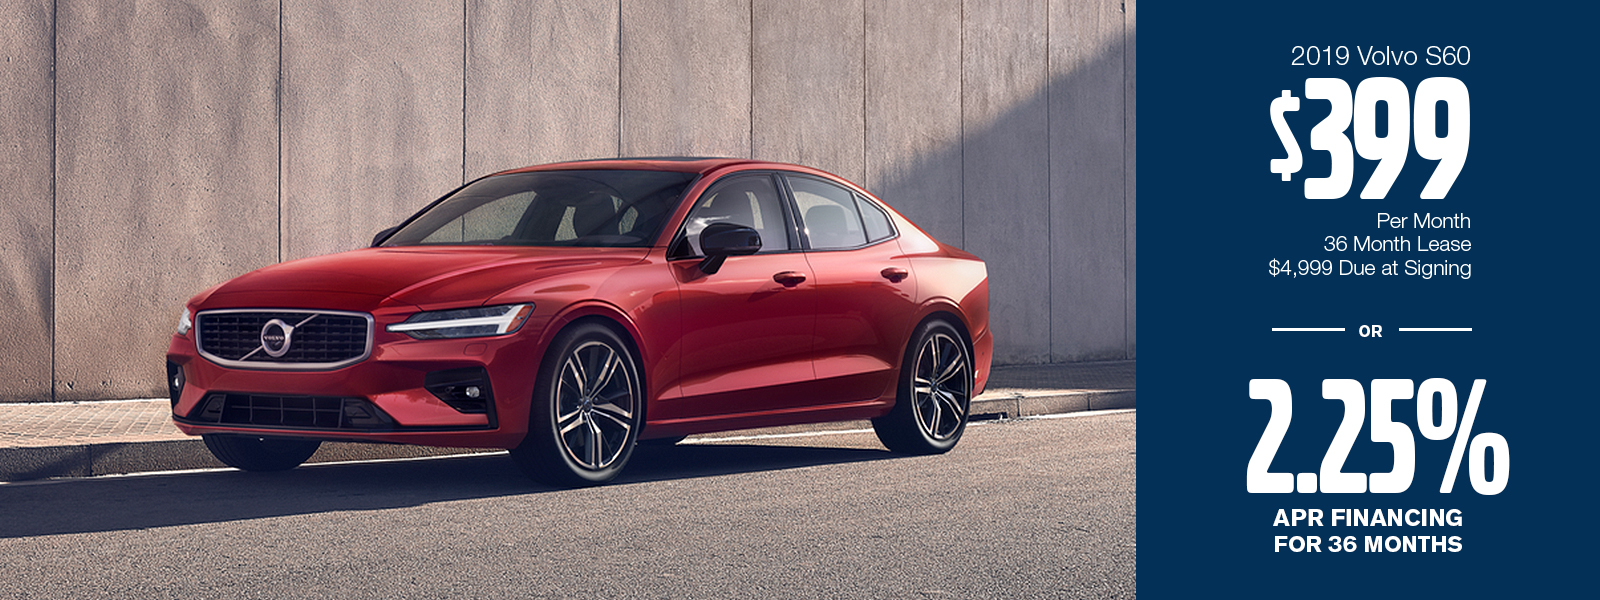 New 2019 S60 Finance or Low Payment Lease Special at Volvo Cars Gilbert